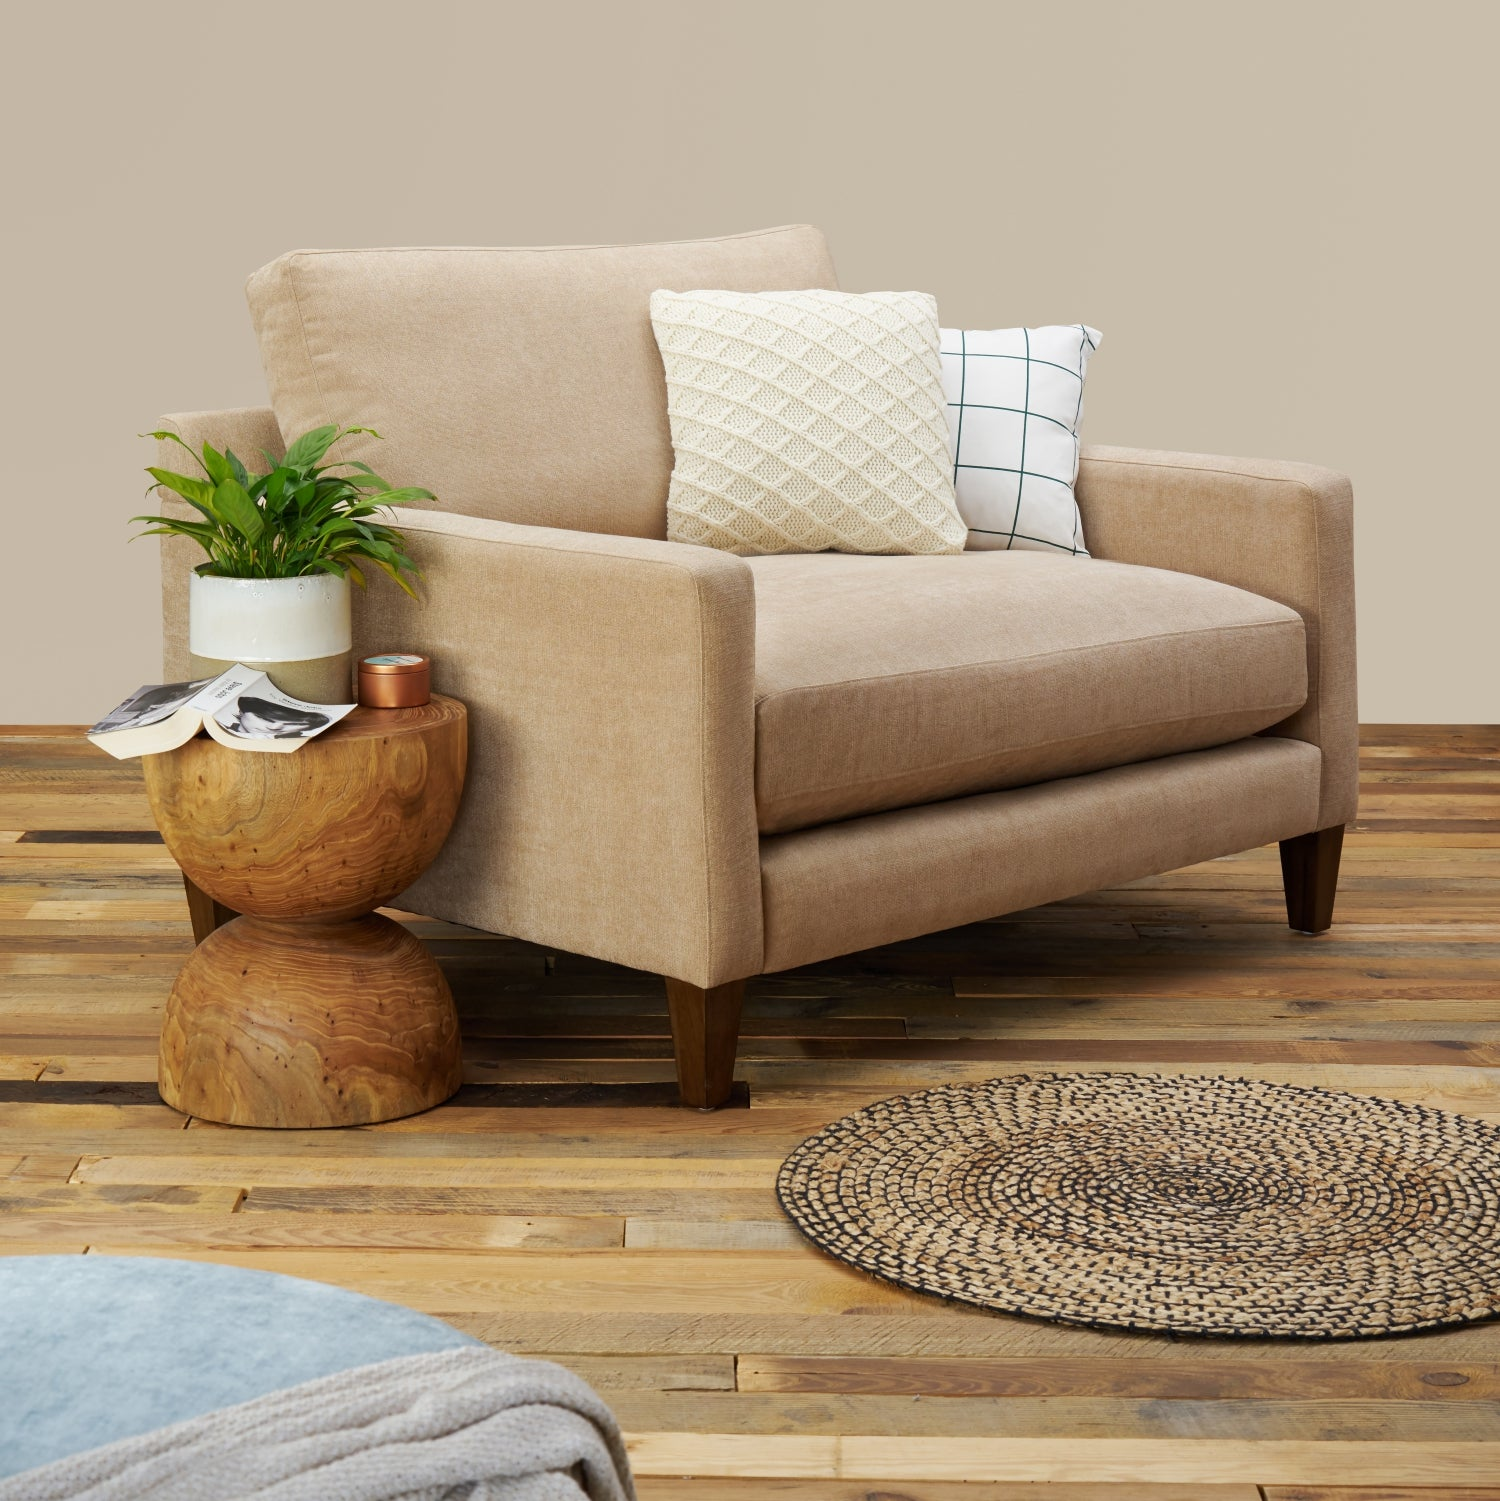 Super Romo Oversized Lounge Chair With Ottoman Gmtry Best Dining Table And Chair Ideas Images Gmtryco